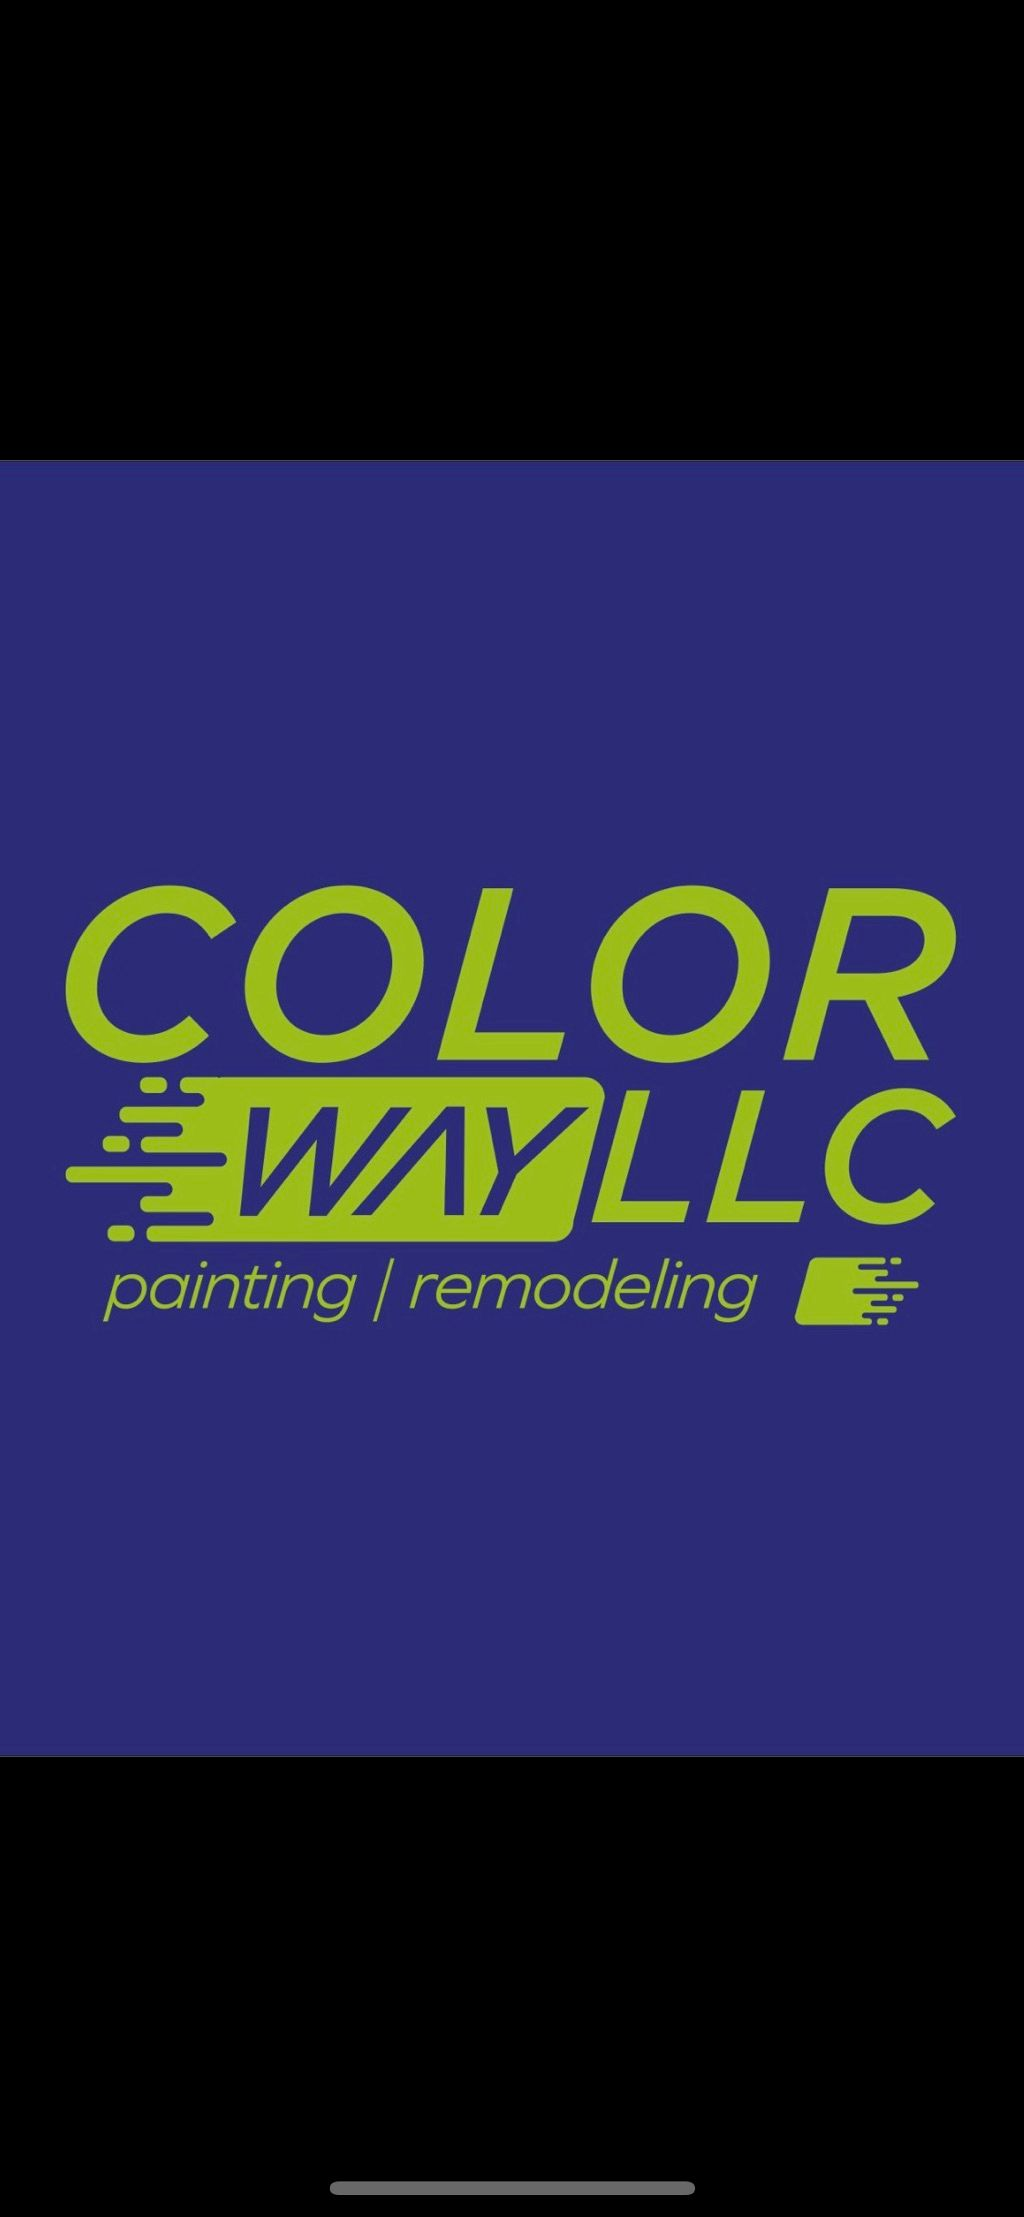 Colorway LLC Painting & Remodeling & Cleaning